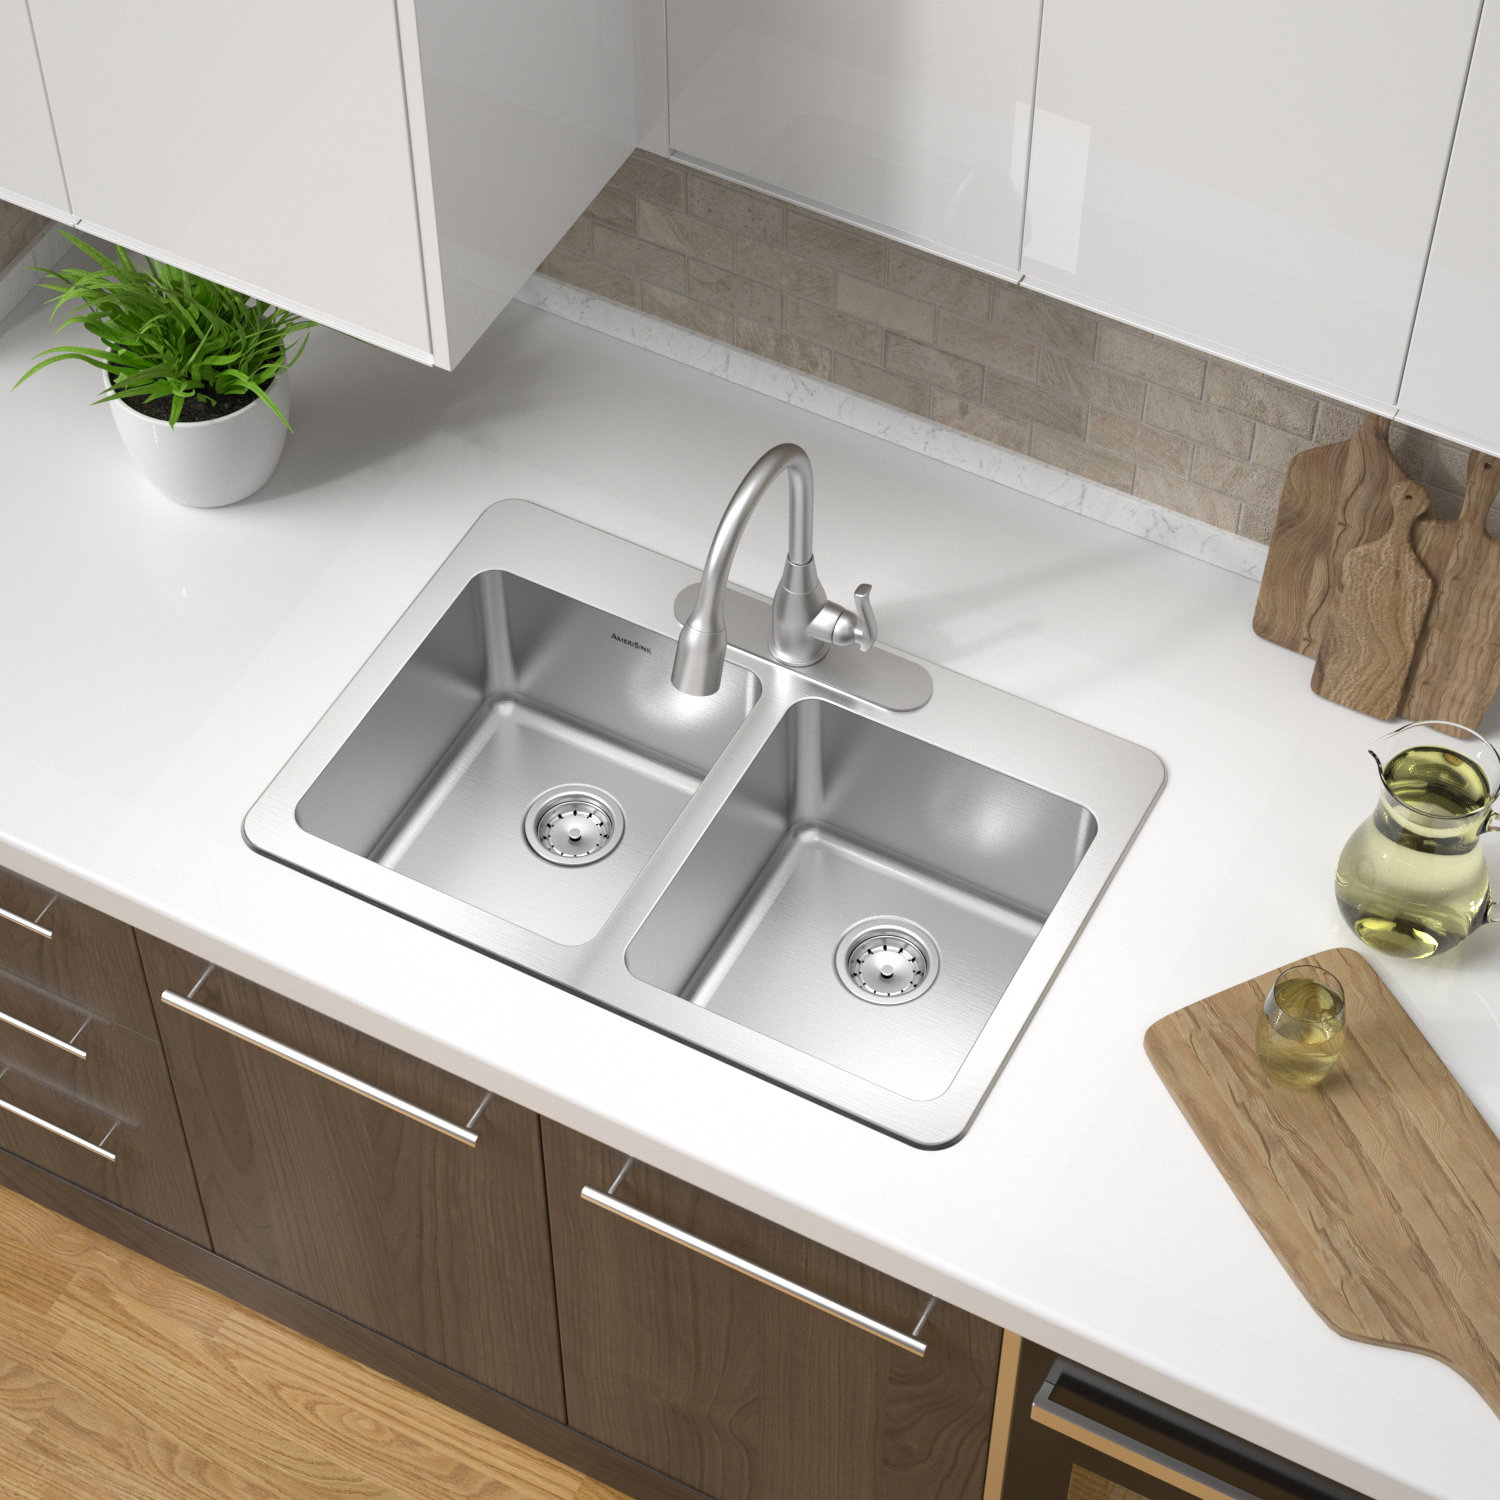 Double Bowl Topmount Builder Stainless Steel Sink